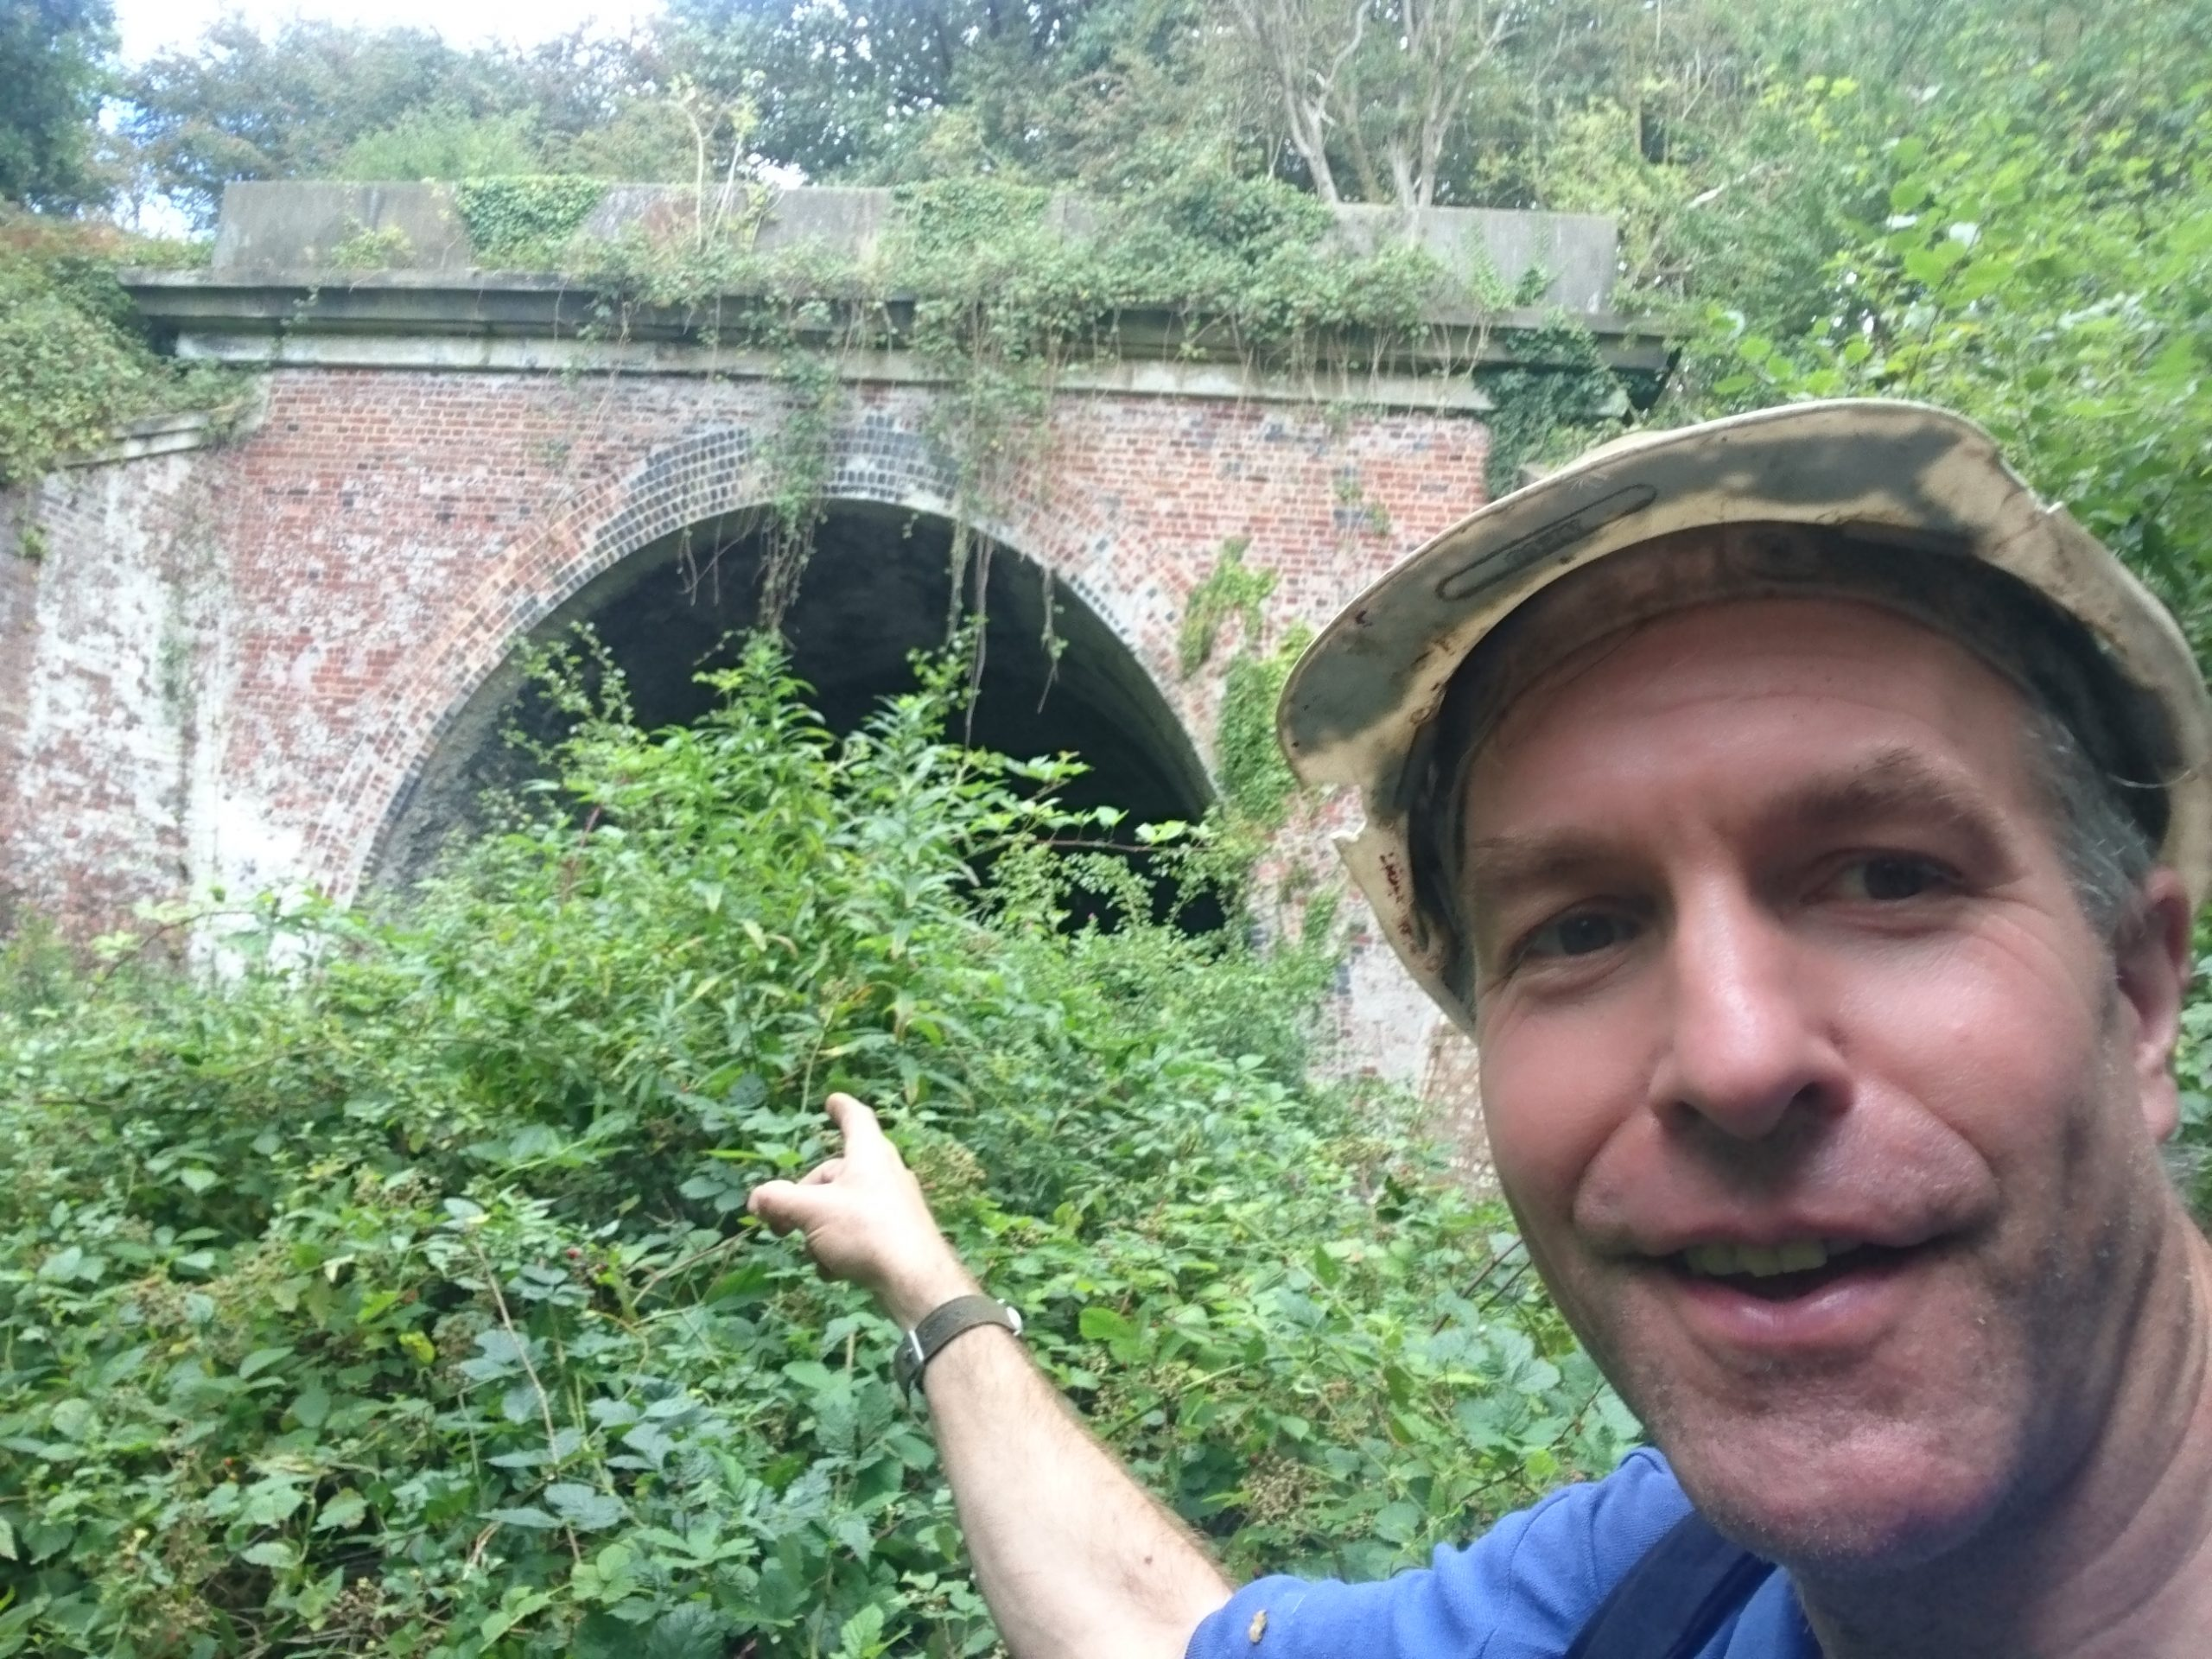 Team member Owen smiling and pointing at the tunnel portal which is heavily obstructed by overgrown bushes